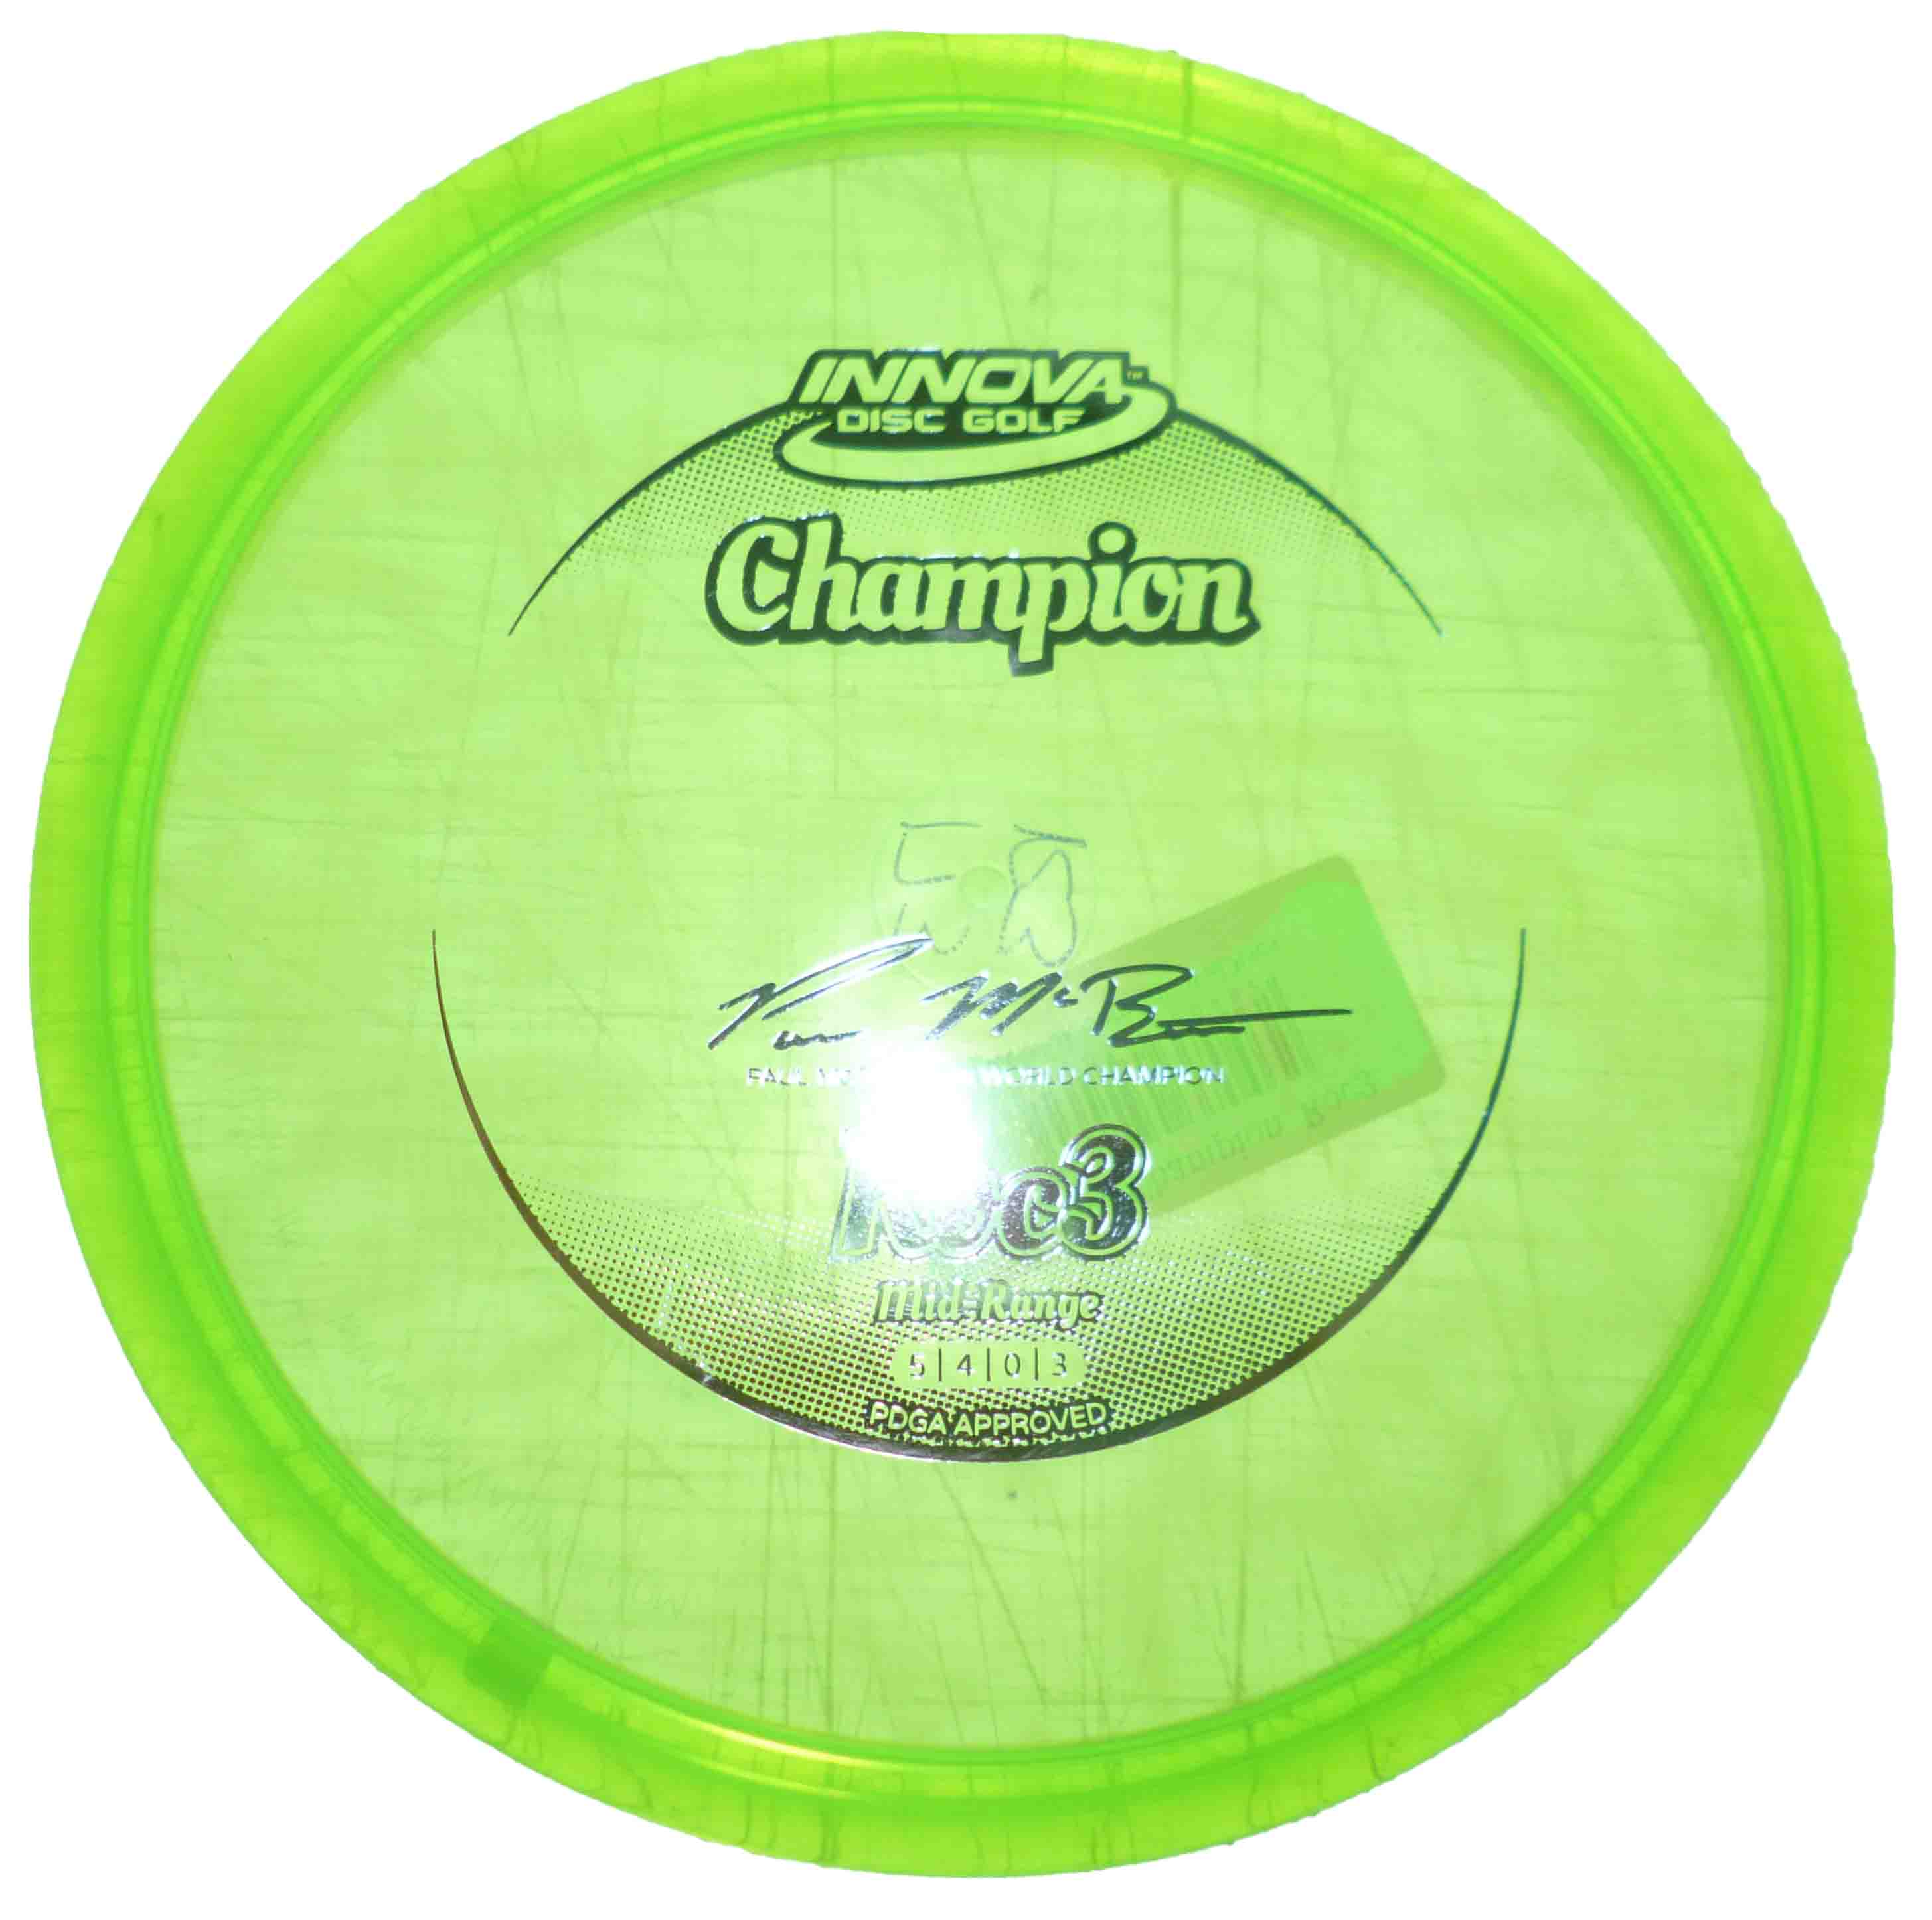 Roc 3 Champion Green